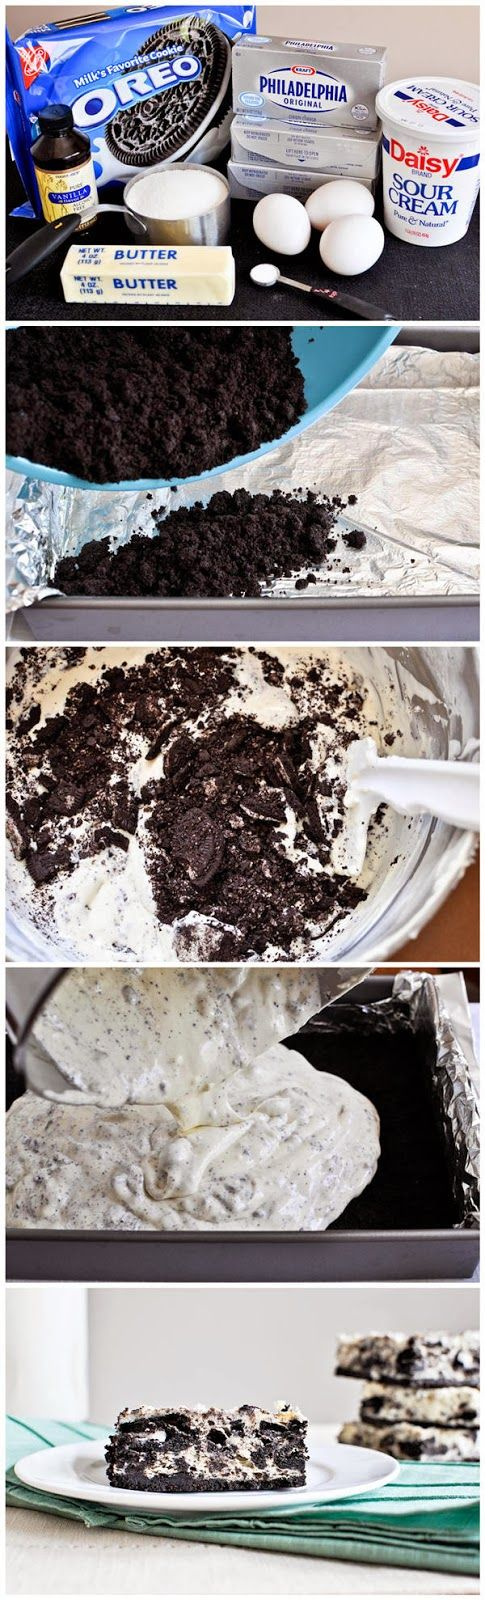 Cookies and Cream Cheesecake Bars ~ toprecipeblog